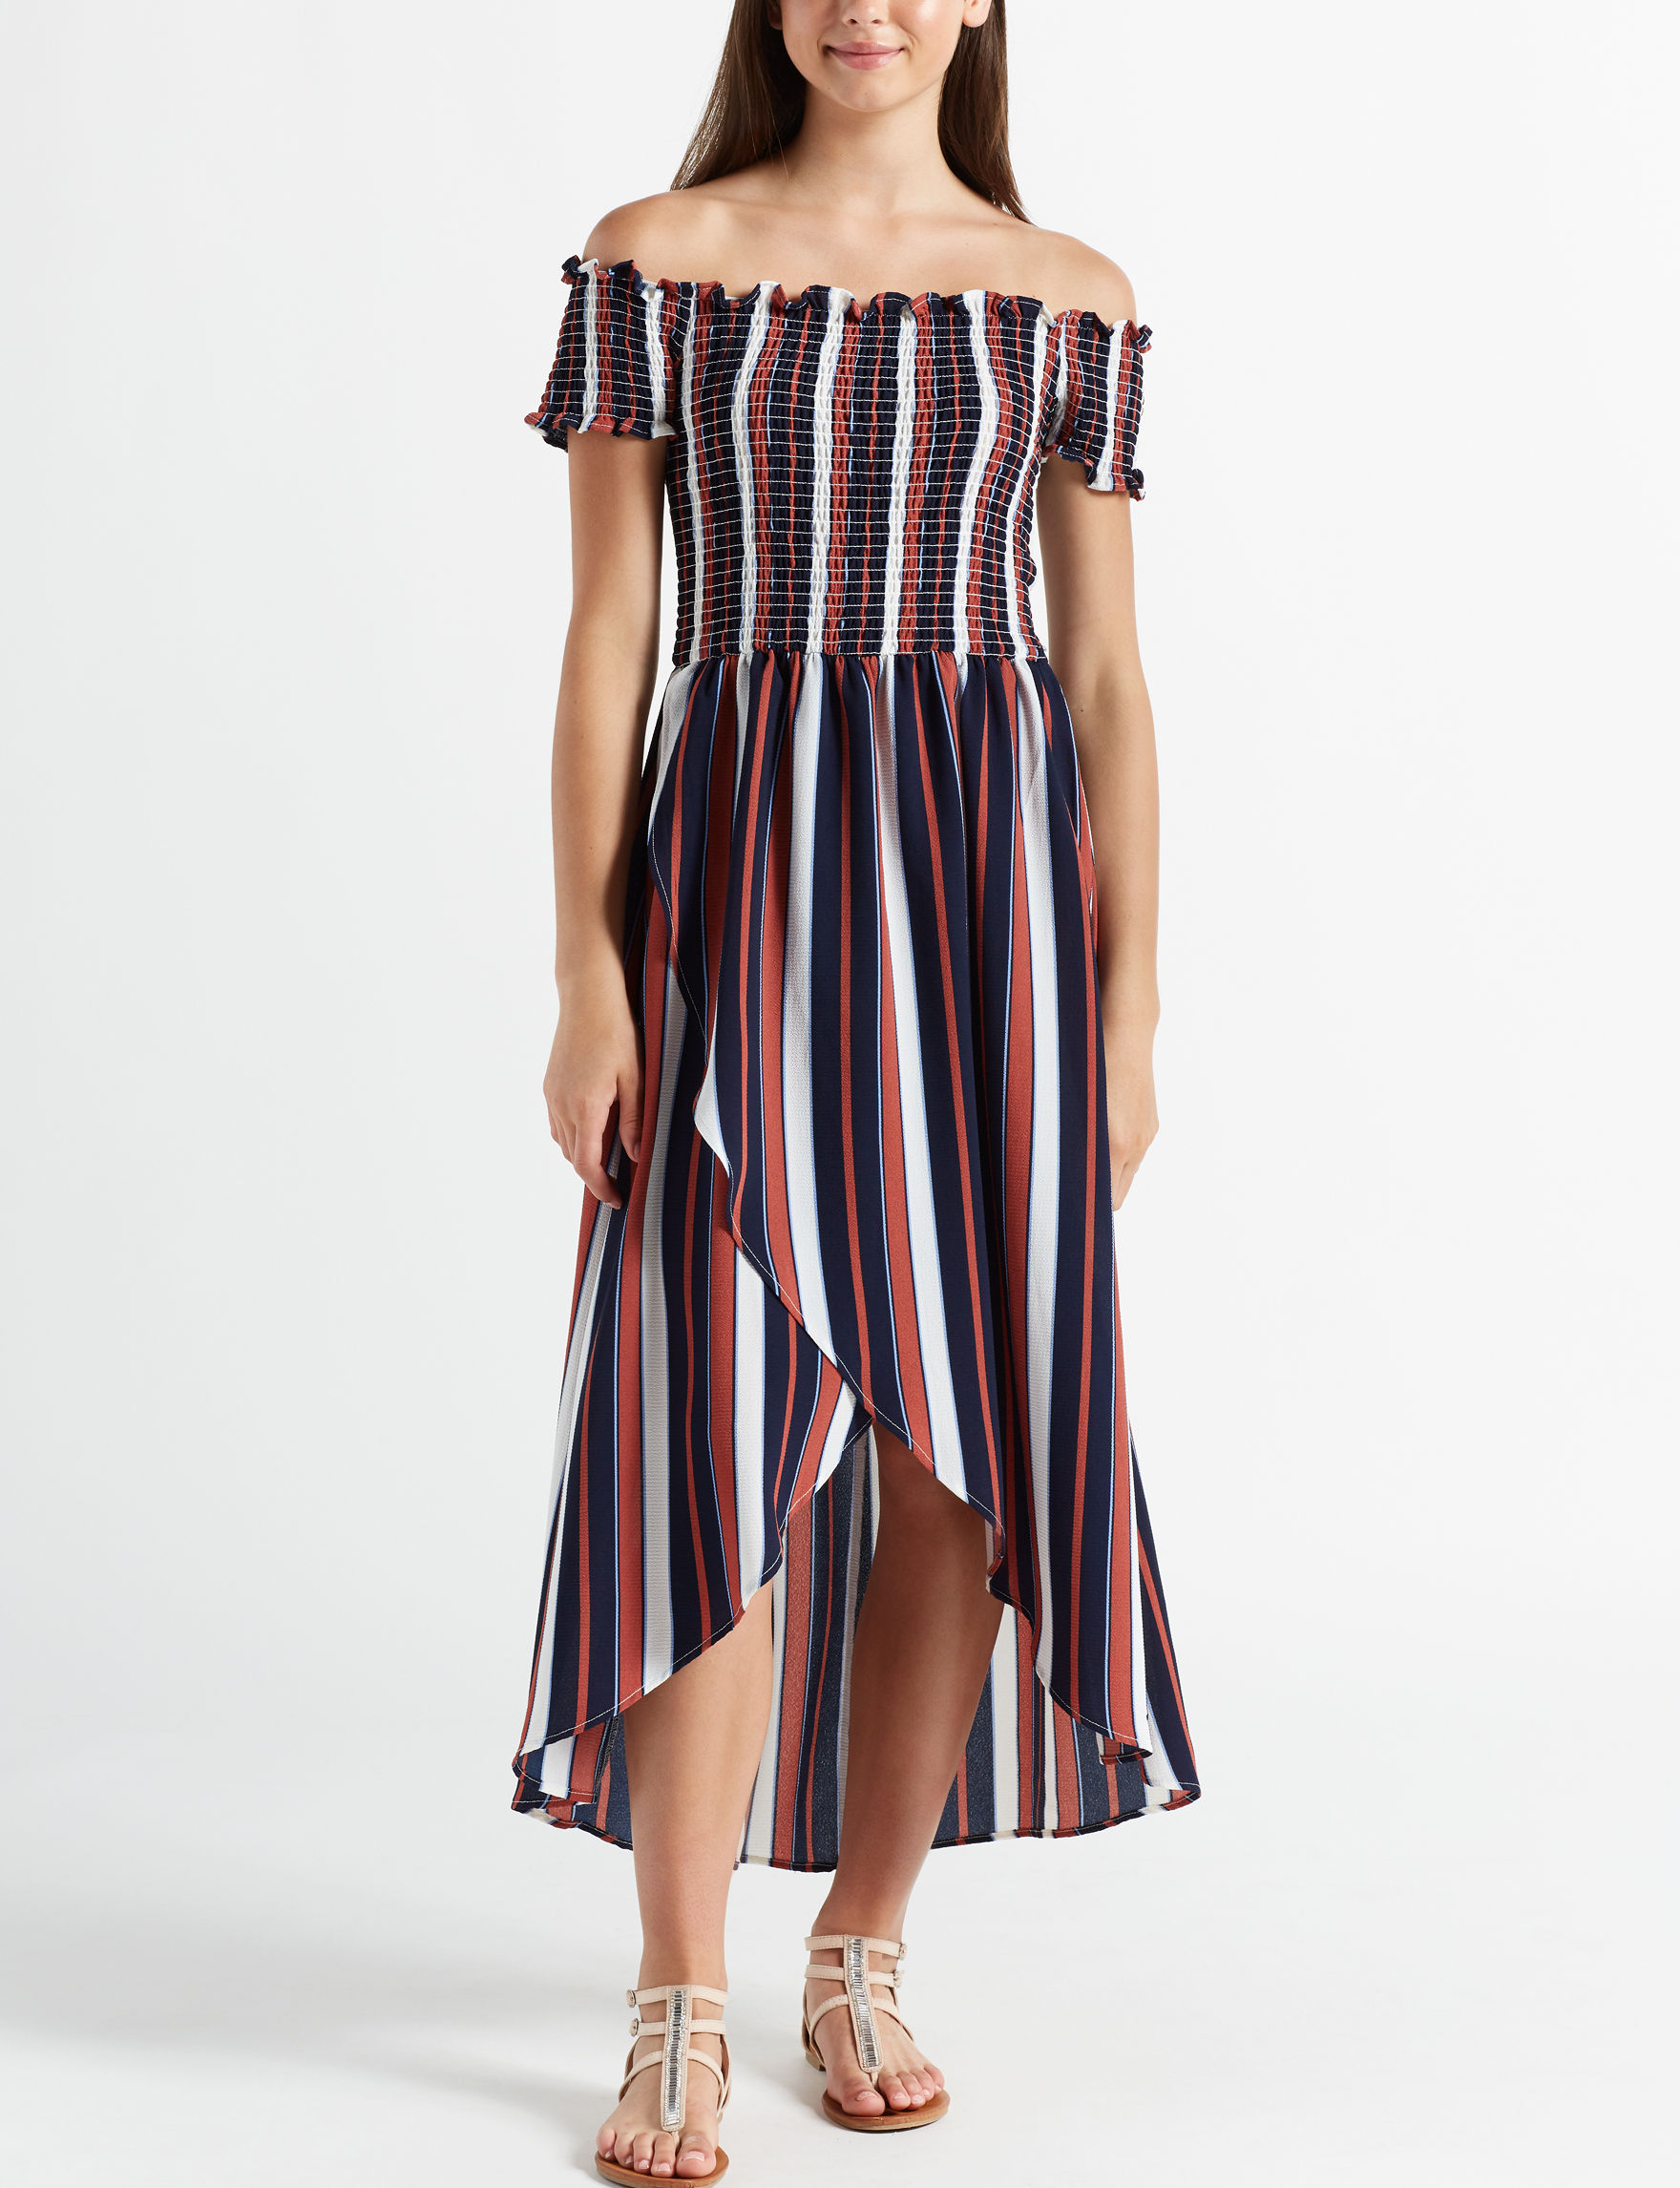 Wishful Park Navy Stripe Everyday & Casual